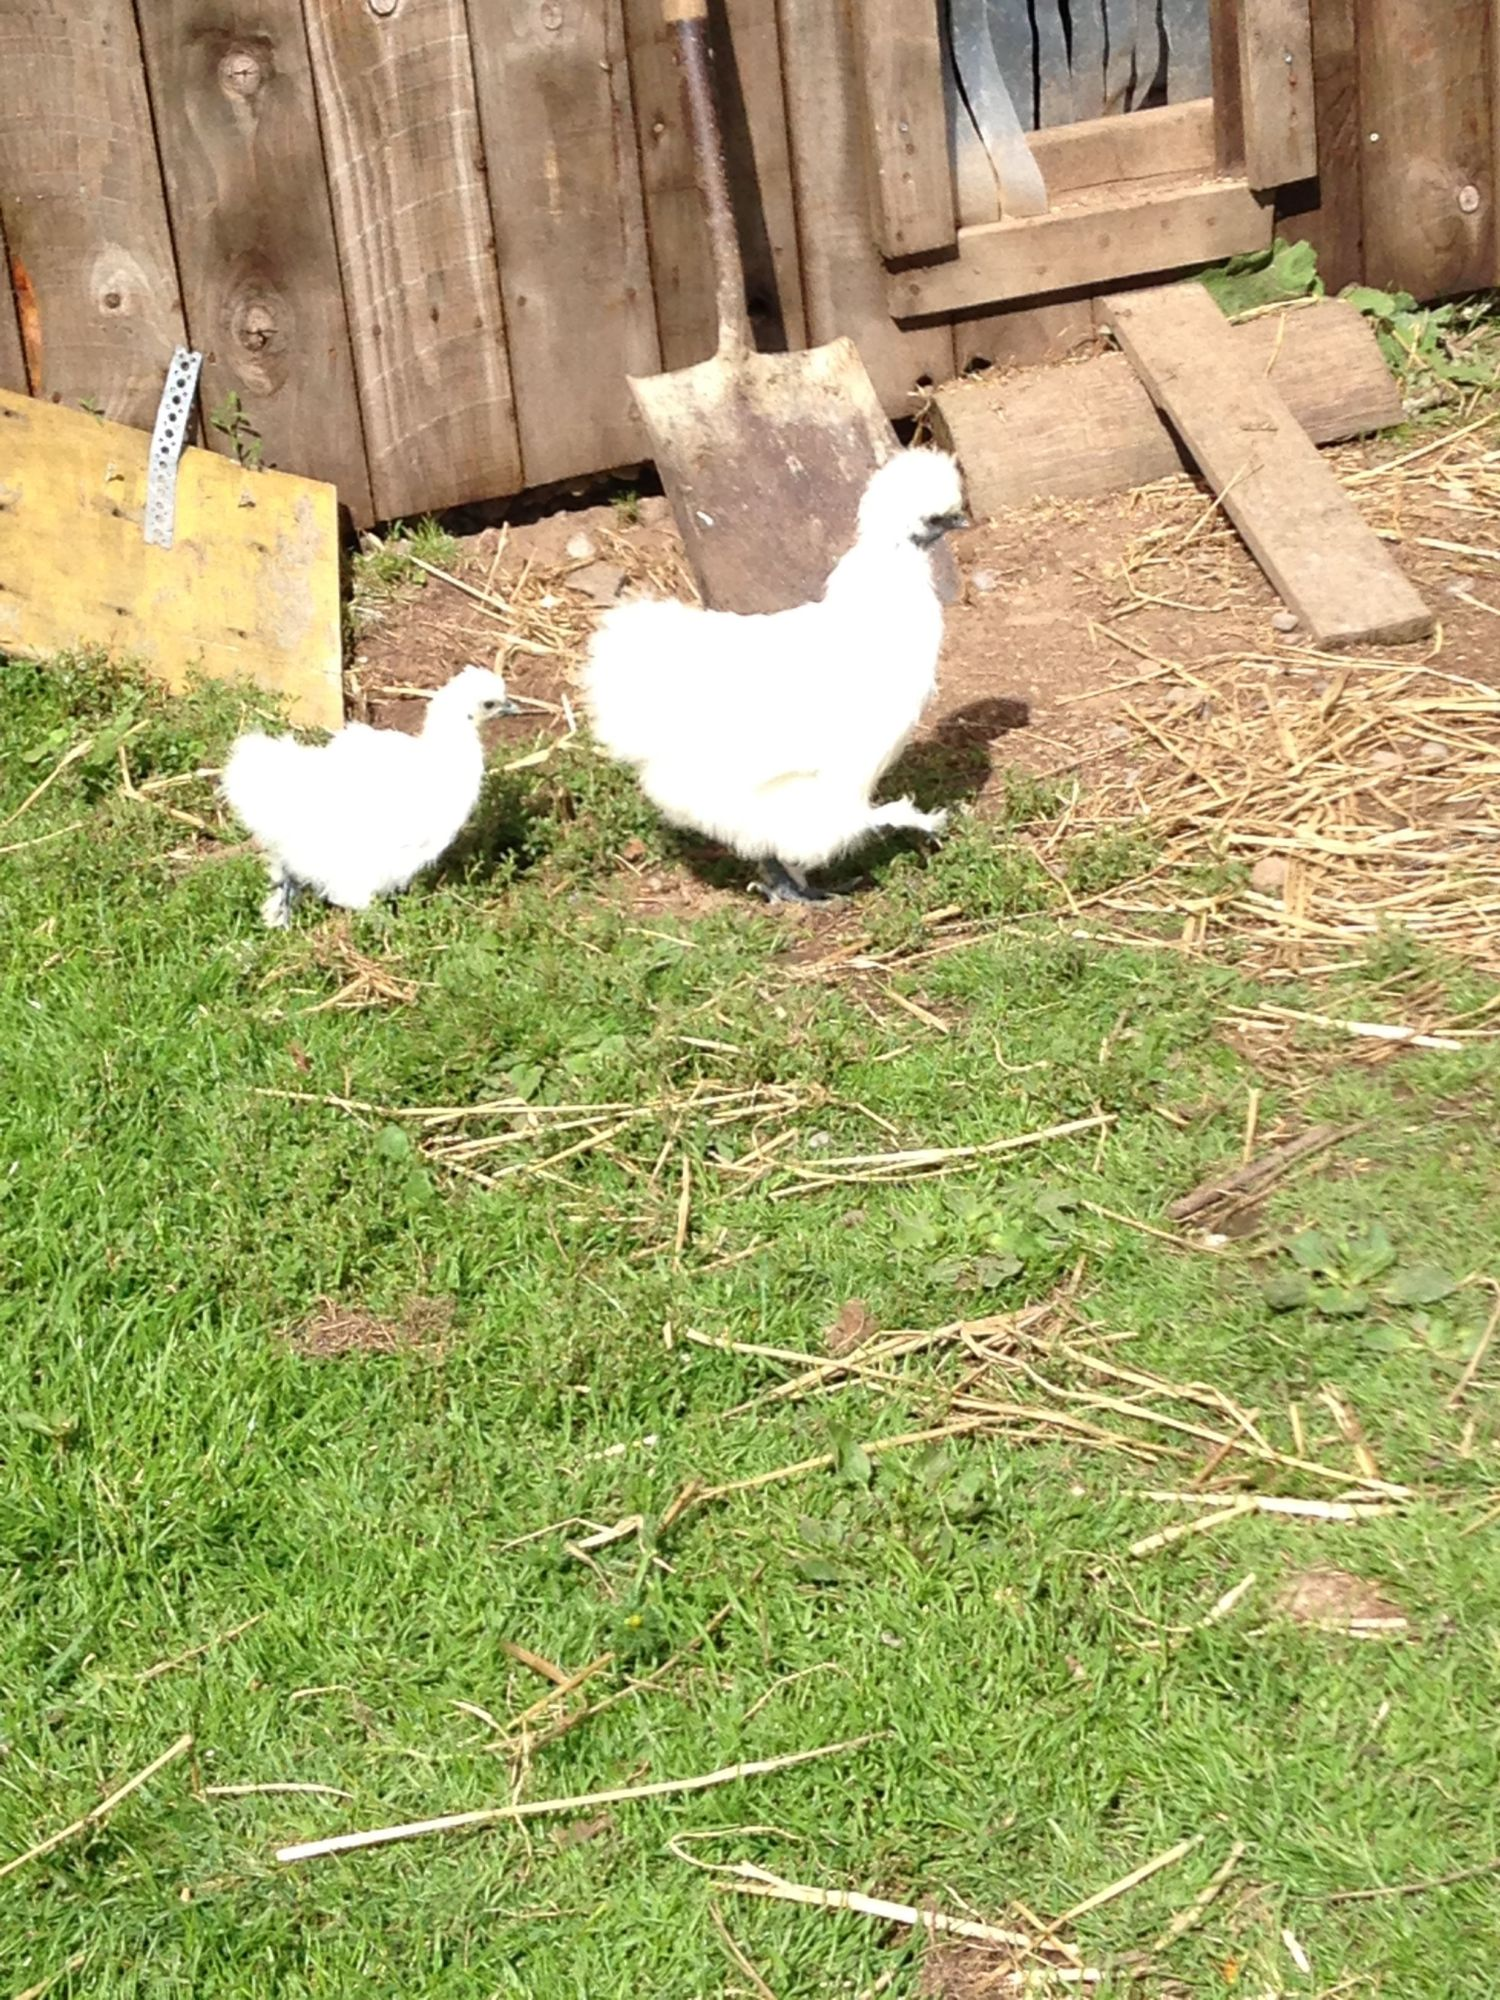 Moving a broody hen and her egg